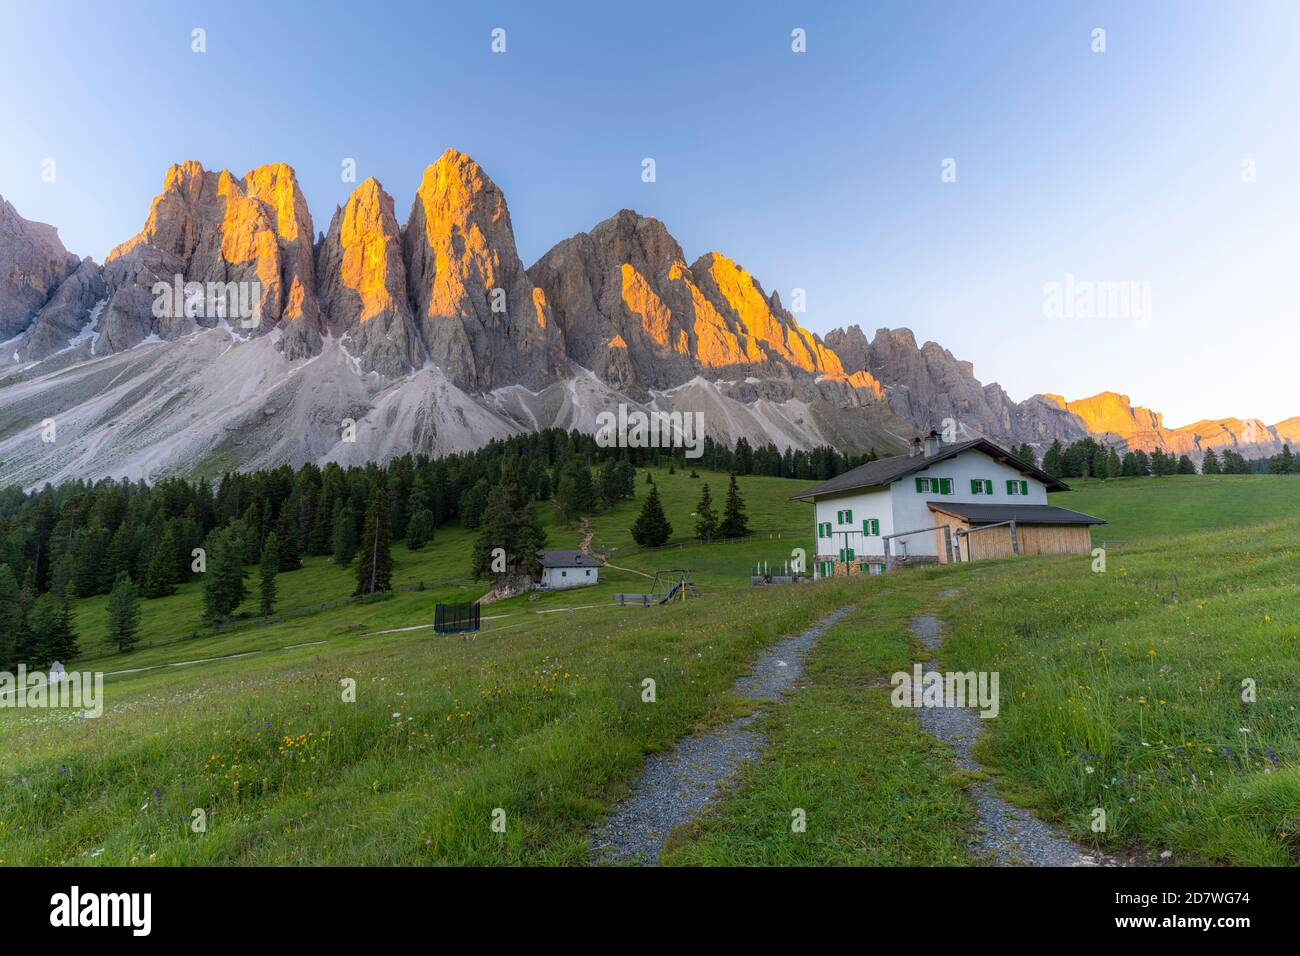 Sass Rigais, Furchetta and Odle mountains at sunset seen from Glatsch Alm hut, Val di Funes, South Tyrol, Dolomites, Italy Stock Photo